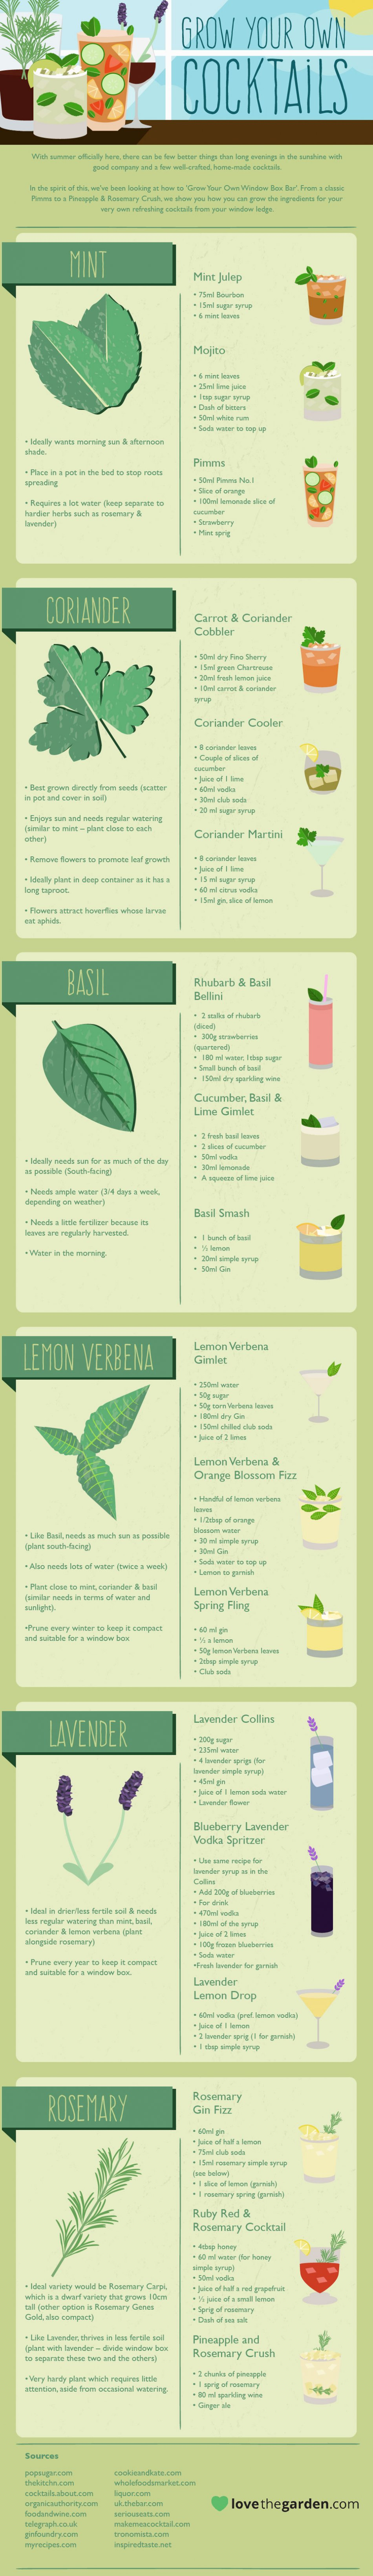 How to grow your own cocktails infographic